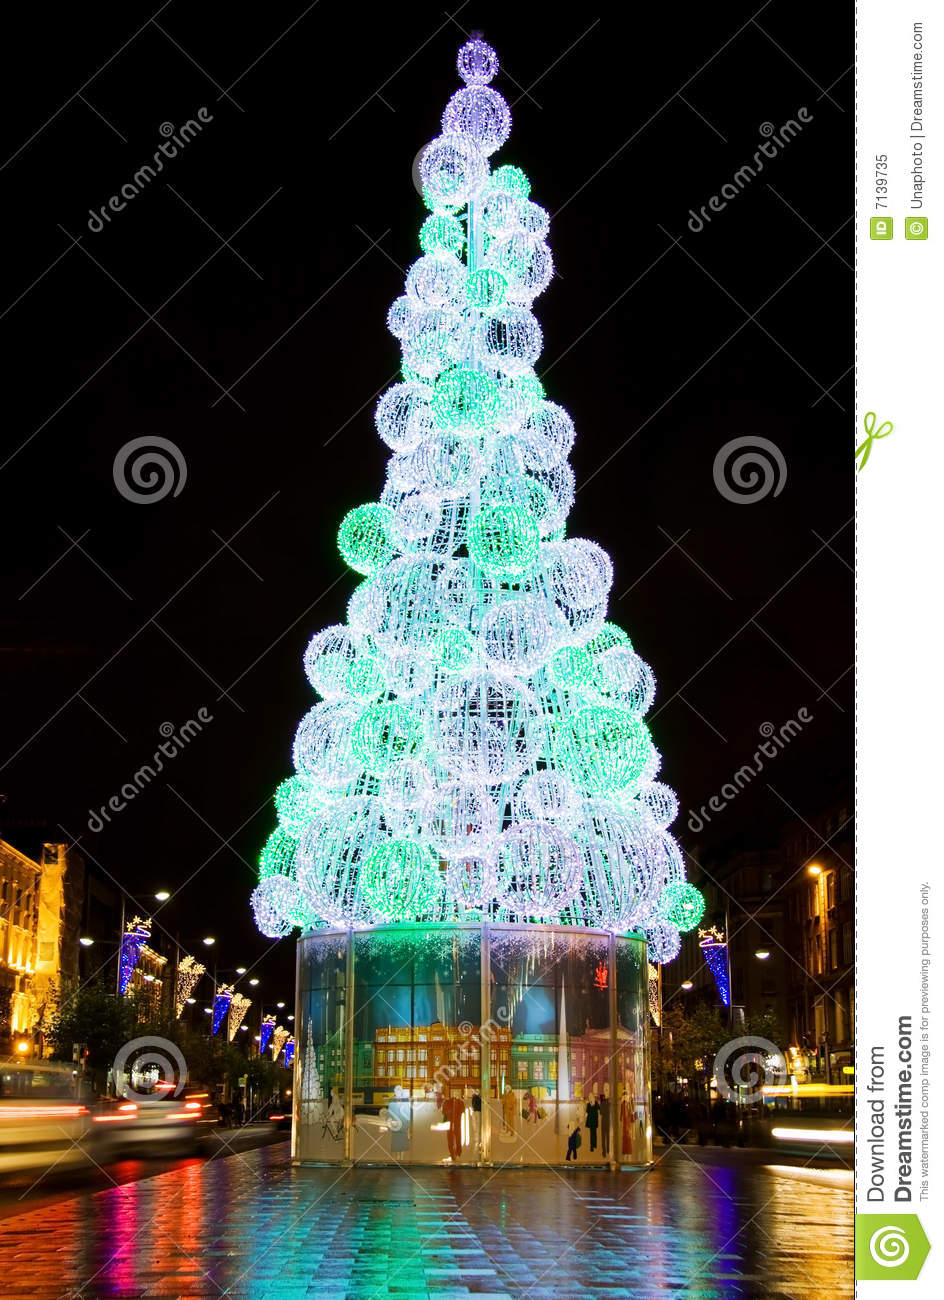 Christmas Tree In Dublin City At Night Stock Image Image